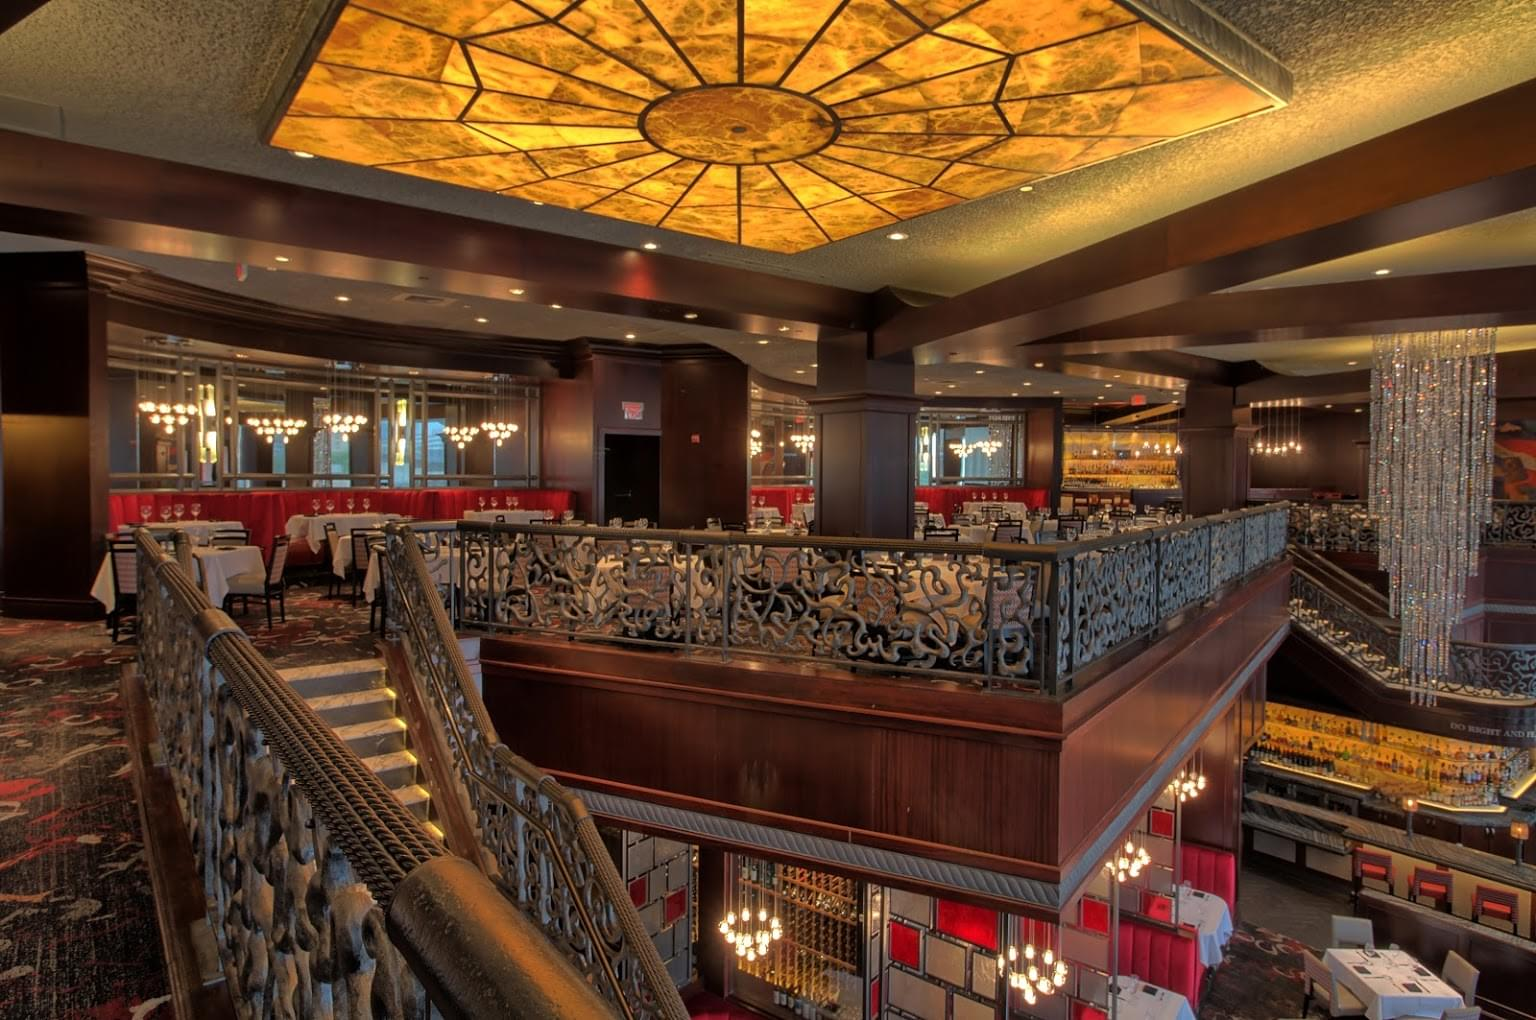 Del Frisco's Double Eagle Steak House at the Galleria in Houston, TX